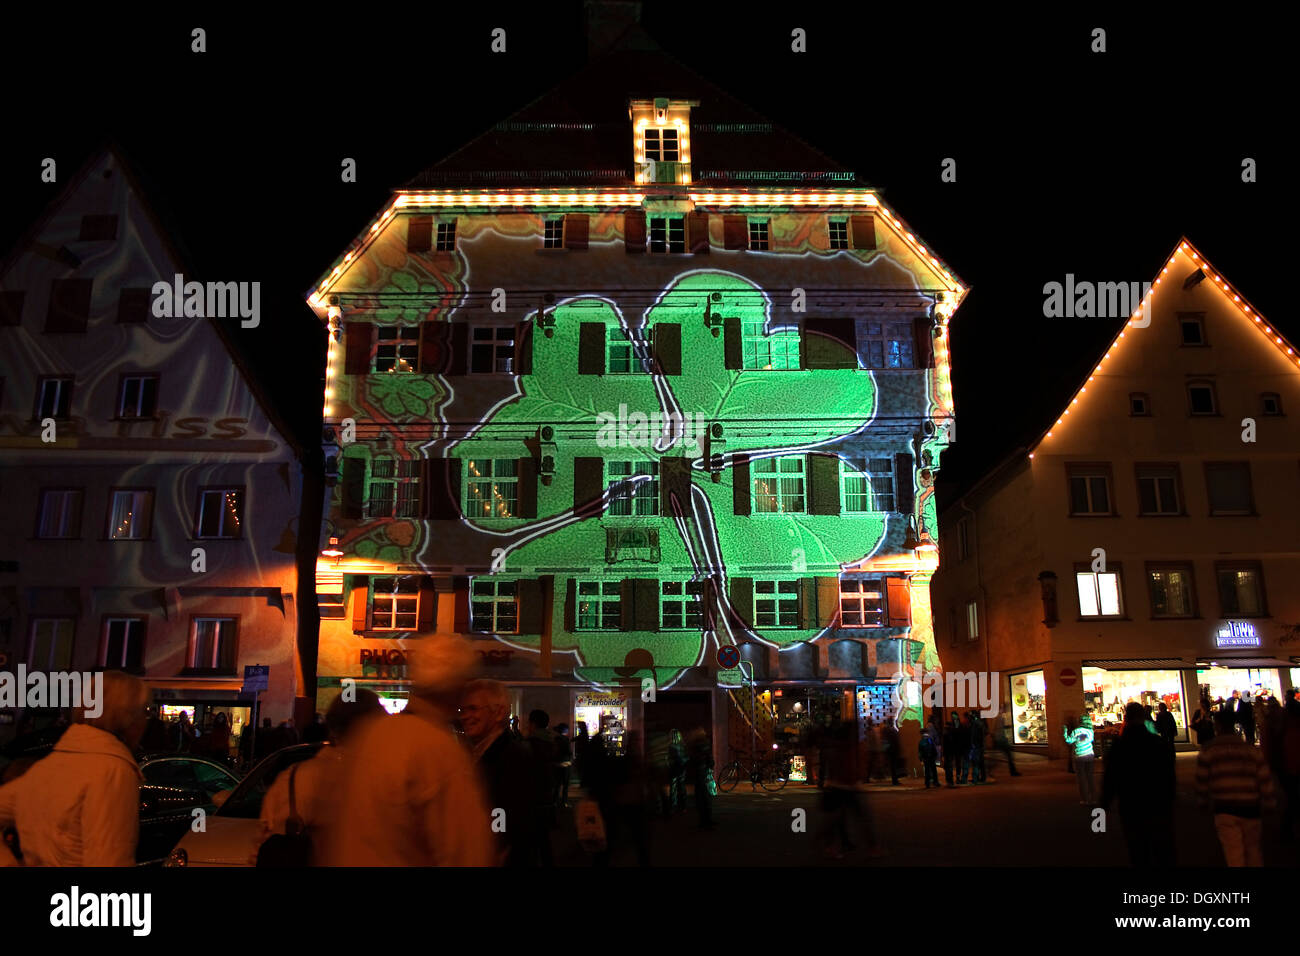 Clover image projected on Kleeblatthaus building, market square, of Biberach an der Riss, light projection installation - Stock Image